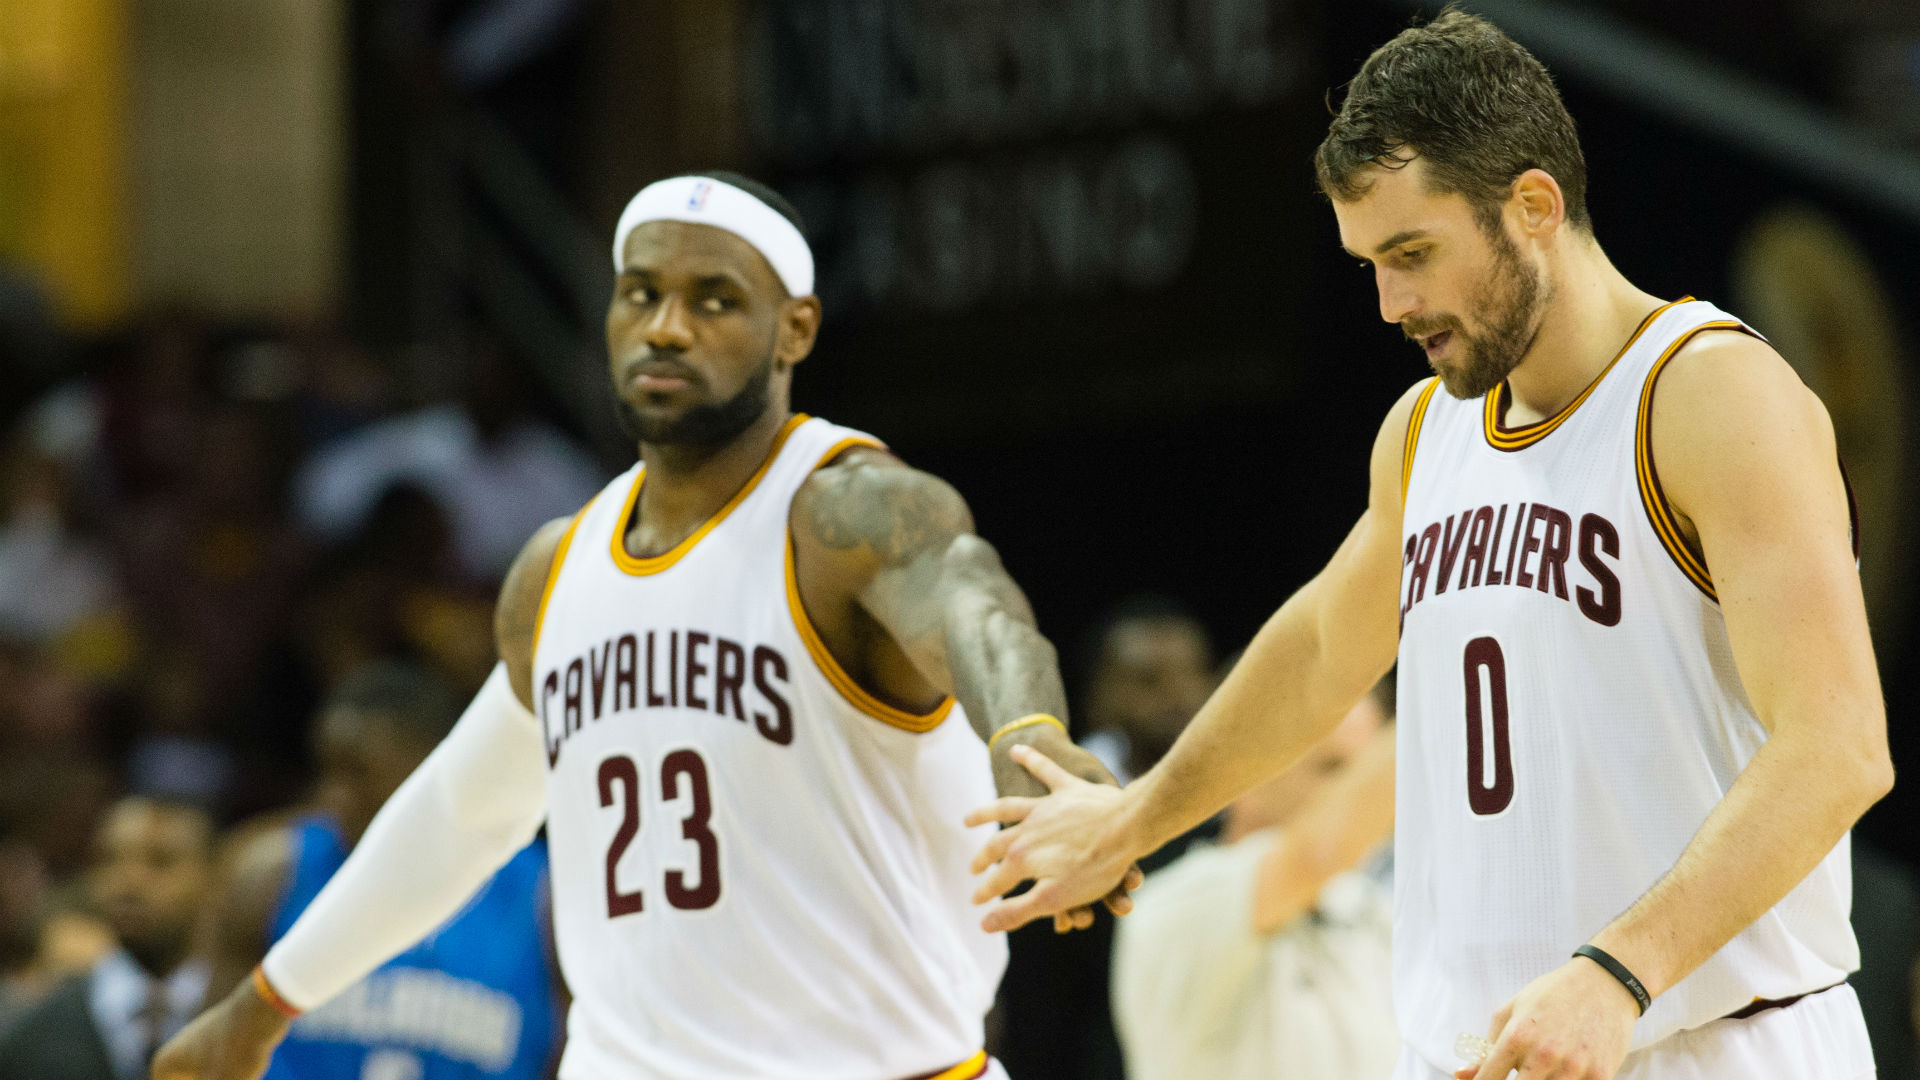 David Blatt doesn't want Cavaliers' playoff burden solely on LeBron